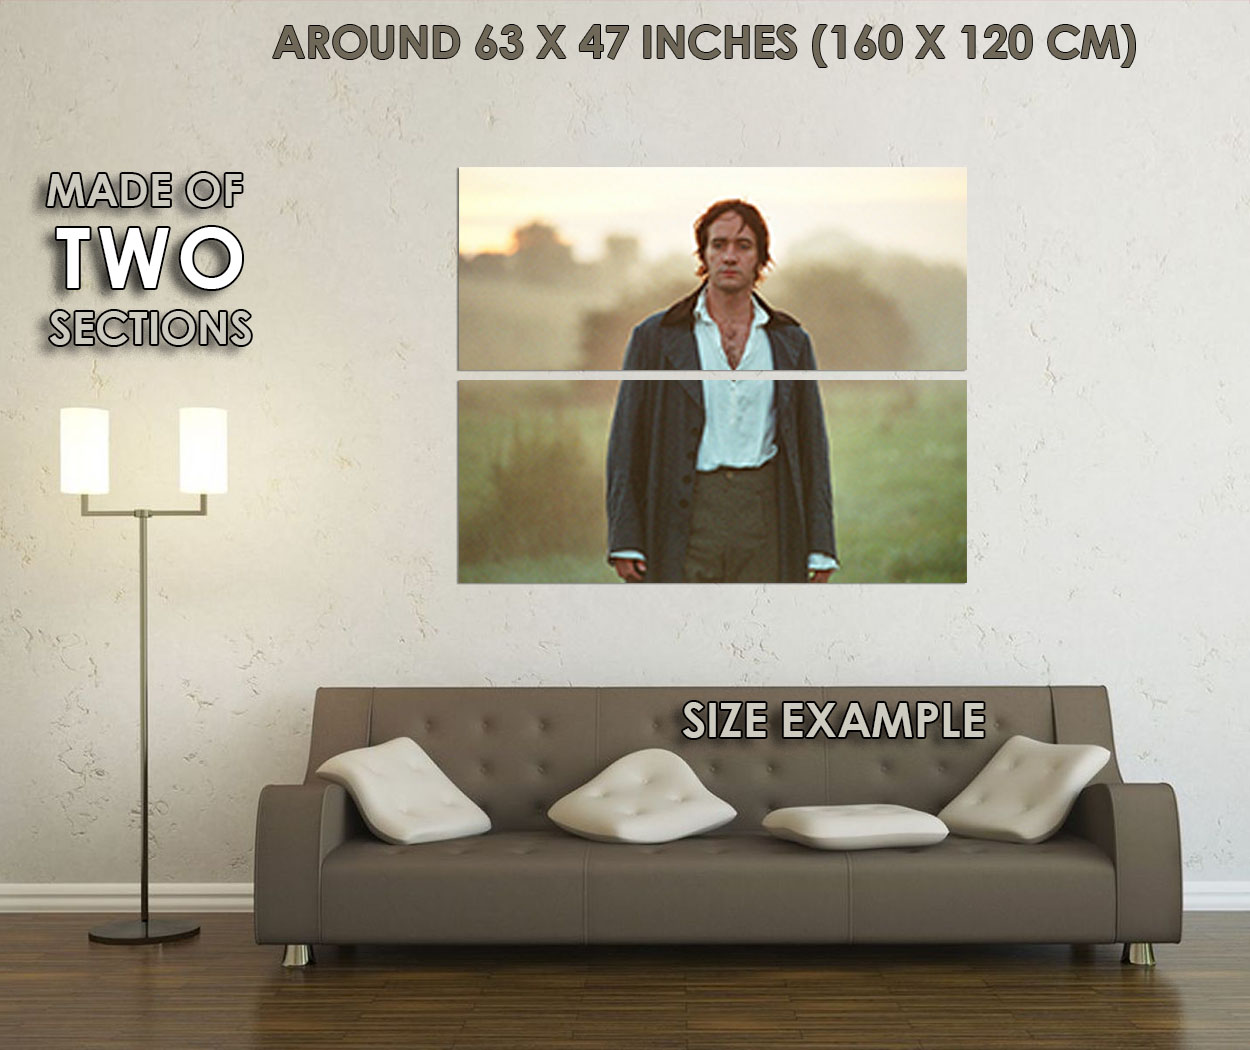 236020-Matthew-Macfadyen-Pride-And-Prejudice-WALL-PRINT-POSTER-FR miniature 6